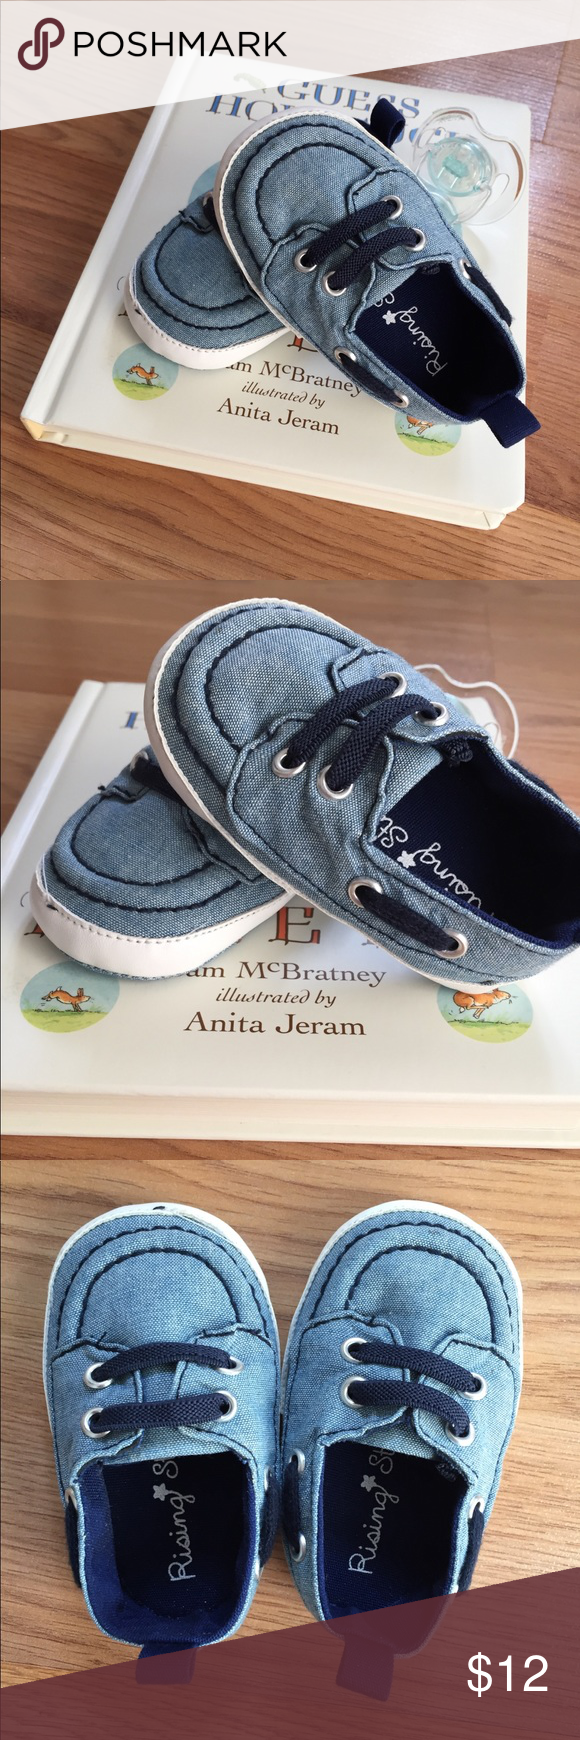 Baby Boy Shoes❗️6-9m | Boy shoes, Baby